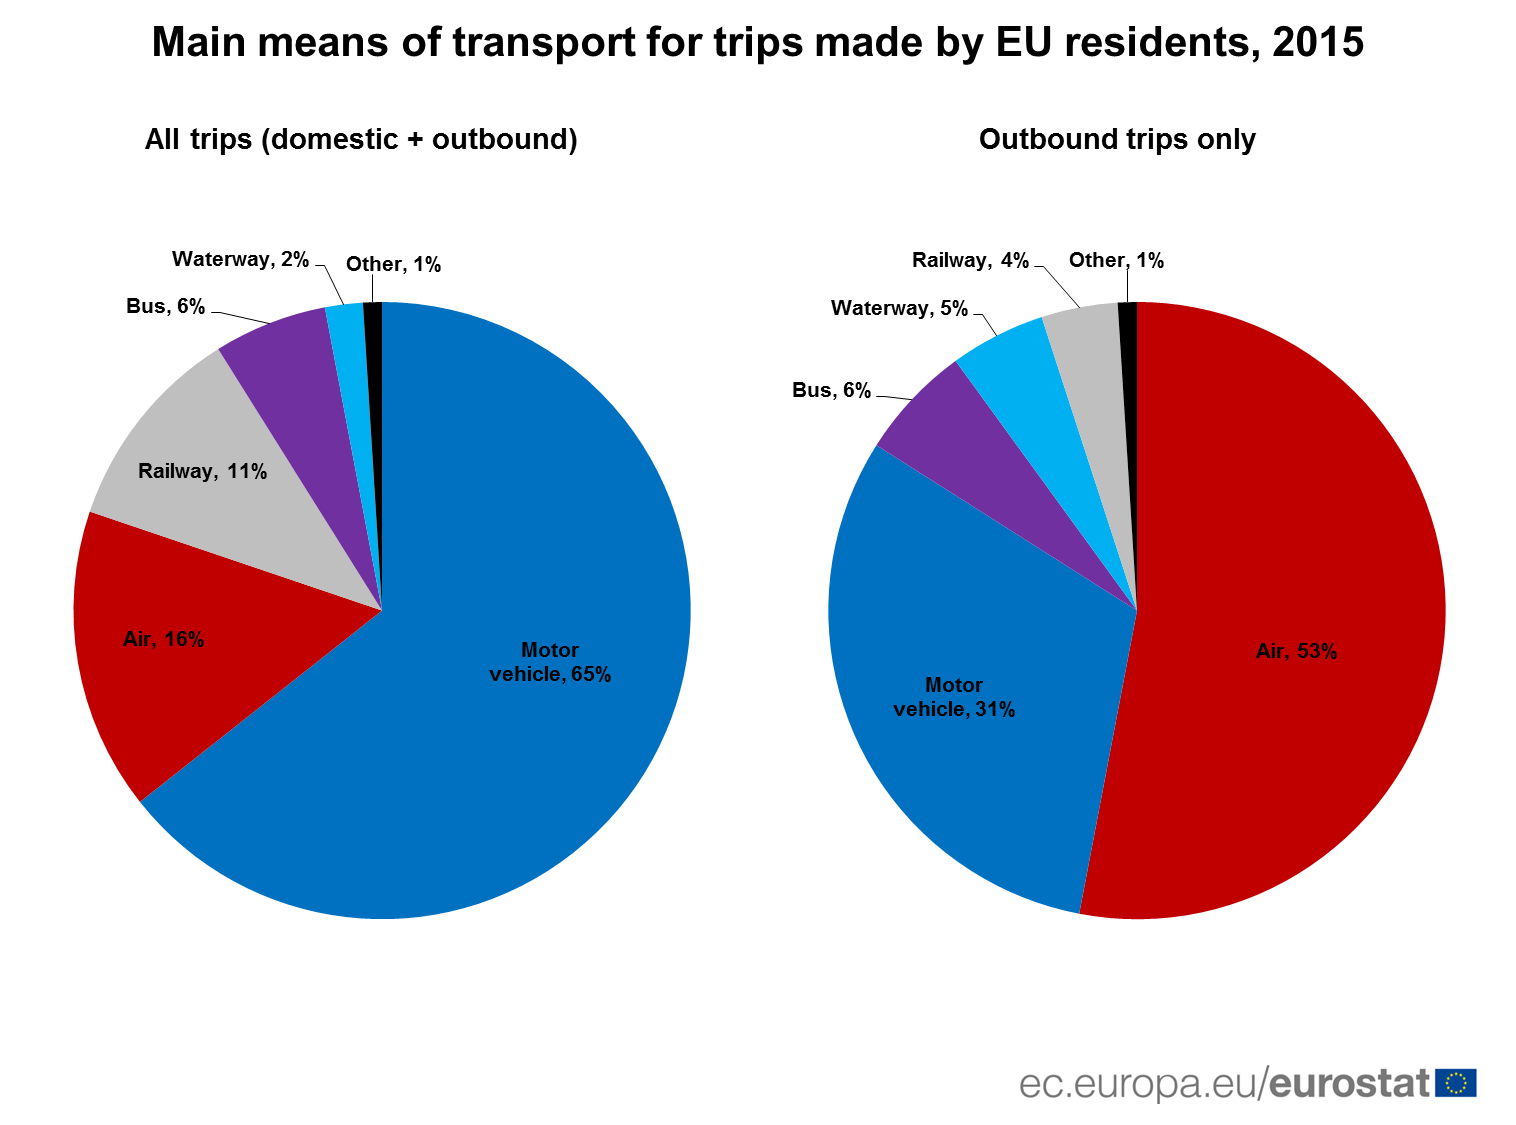 Eurostat: what transport means are preferred by Europeans when they go on vacation